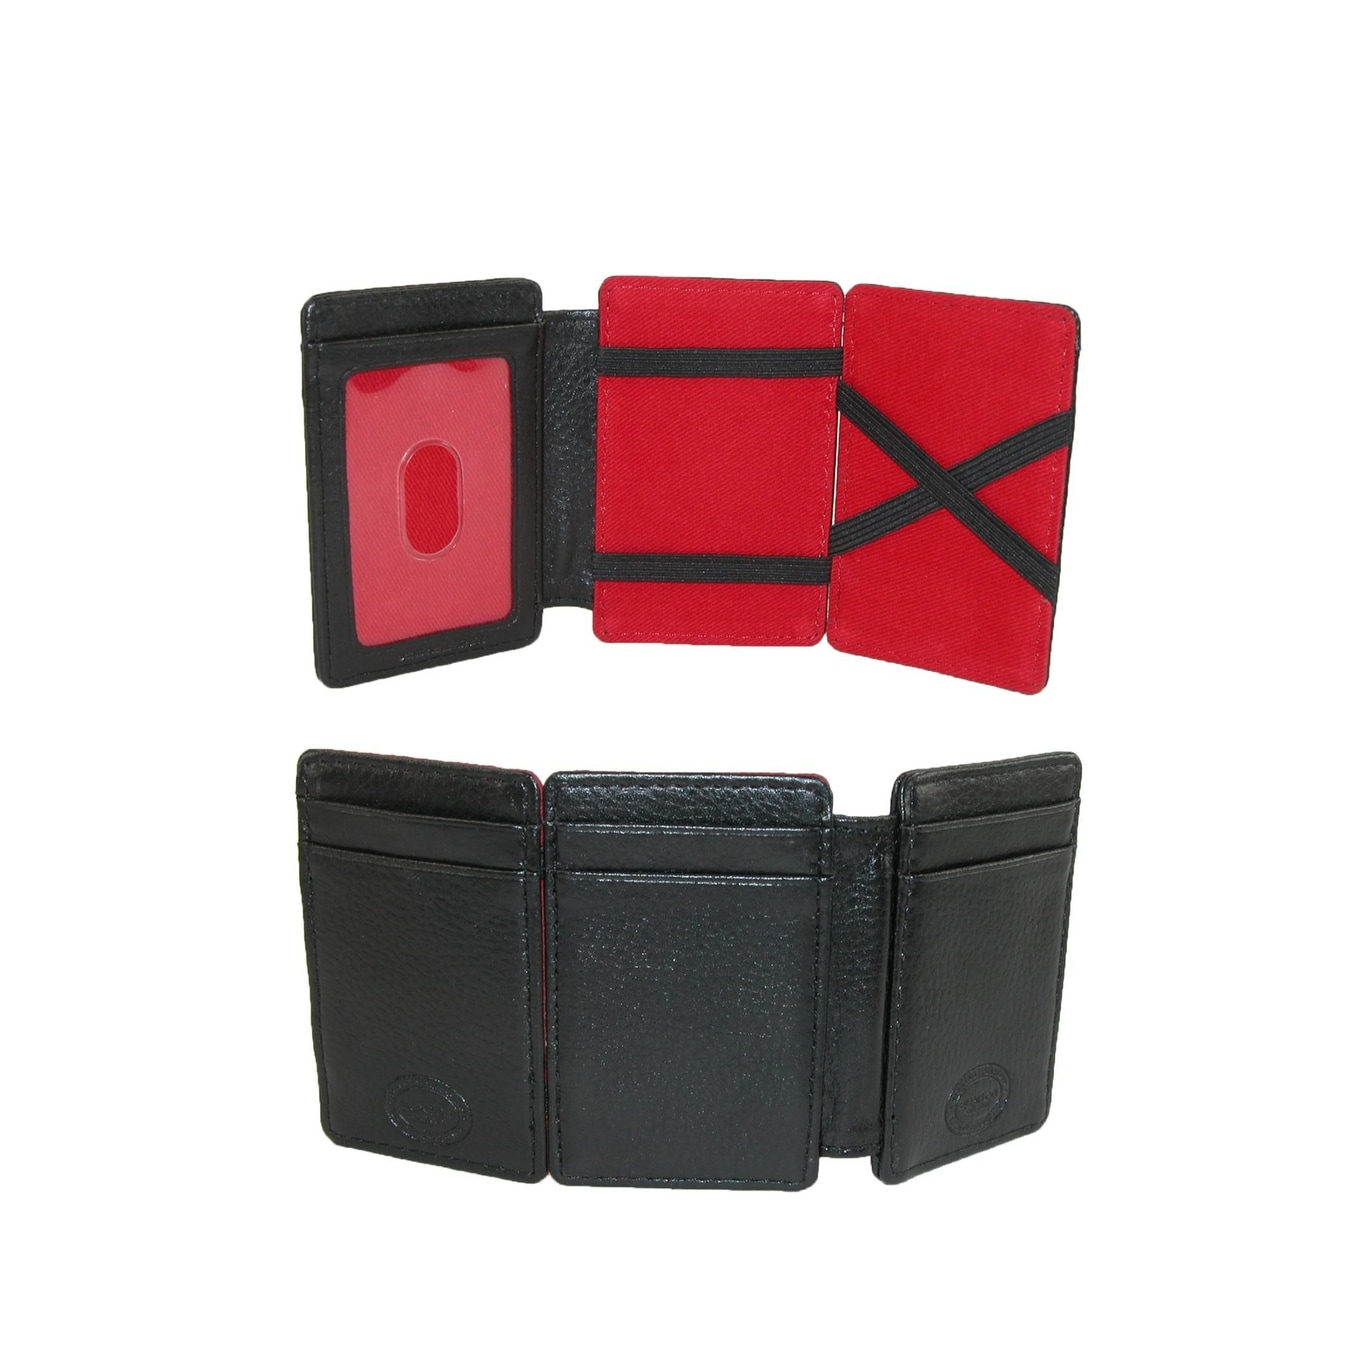 Shop buxton mens leather rfid protected magic card case wallet shop buxton mens leather rfid protected magic card case wallet one size free shipping on orders over 45 overstock 14278586 colourmoves